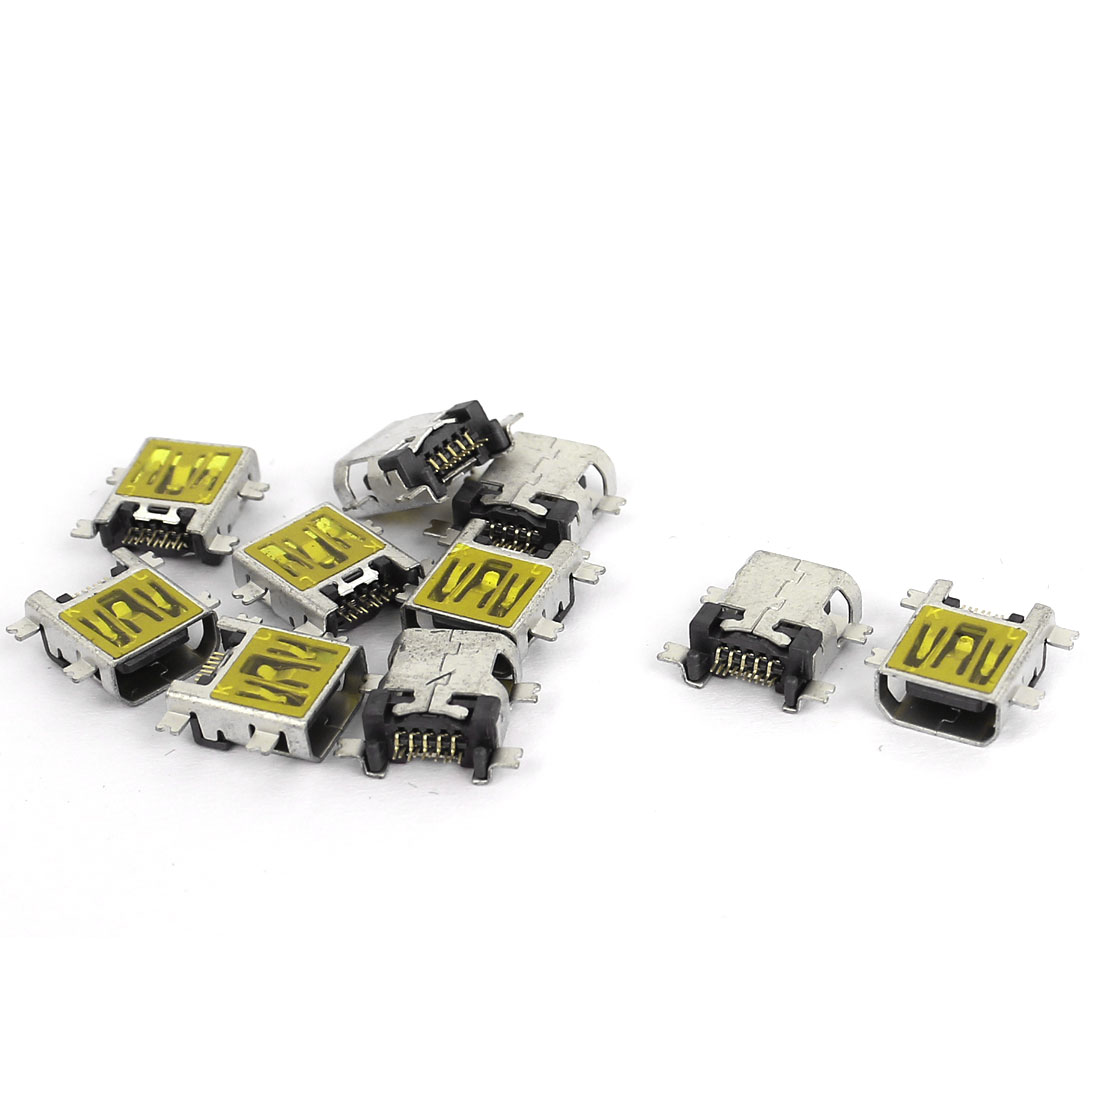 10pcs SMT SMD 10-Pins Mini USB Jack Type B Female Socket PCB Connector